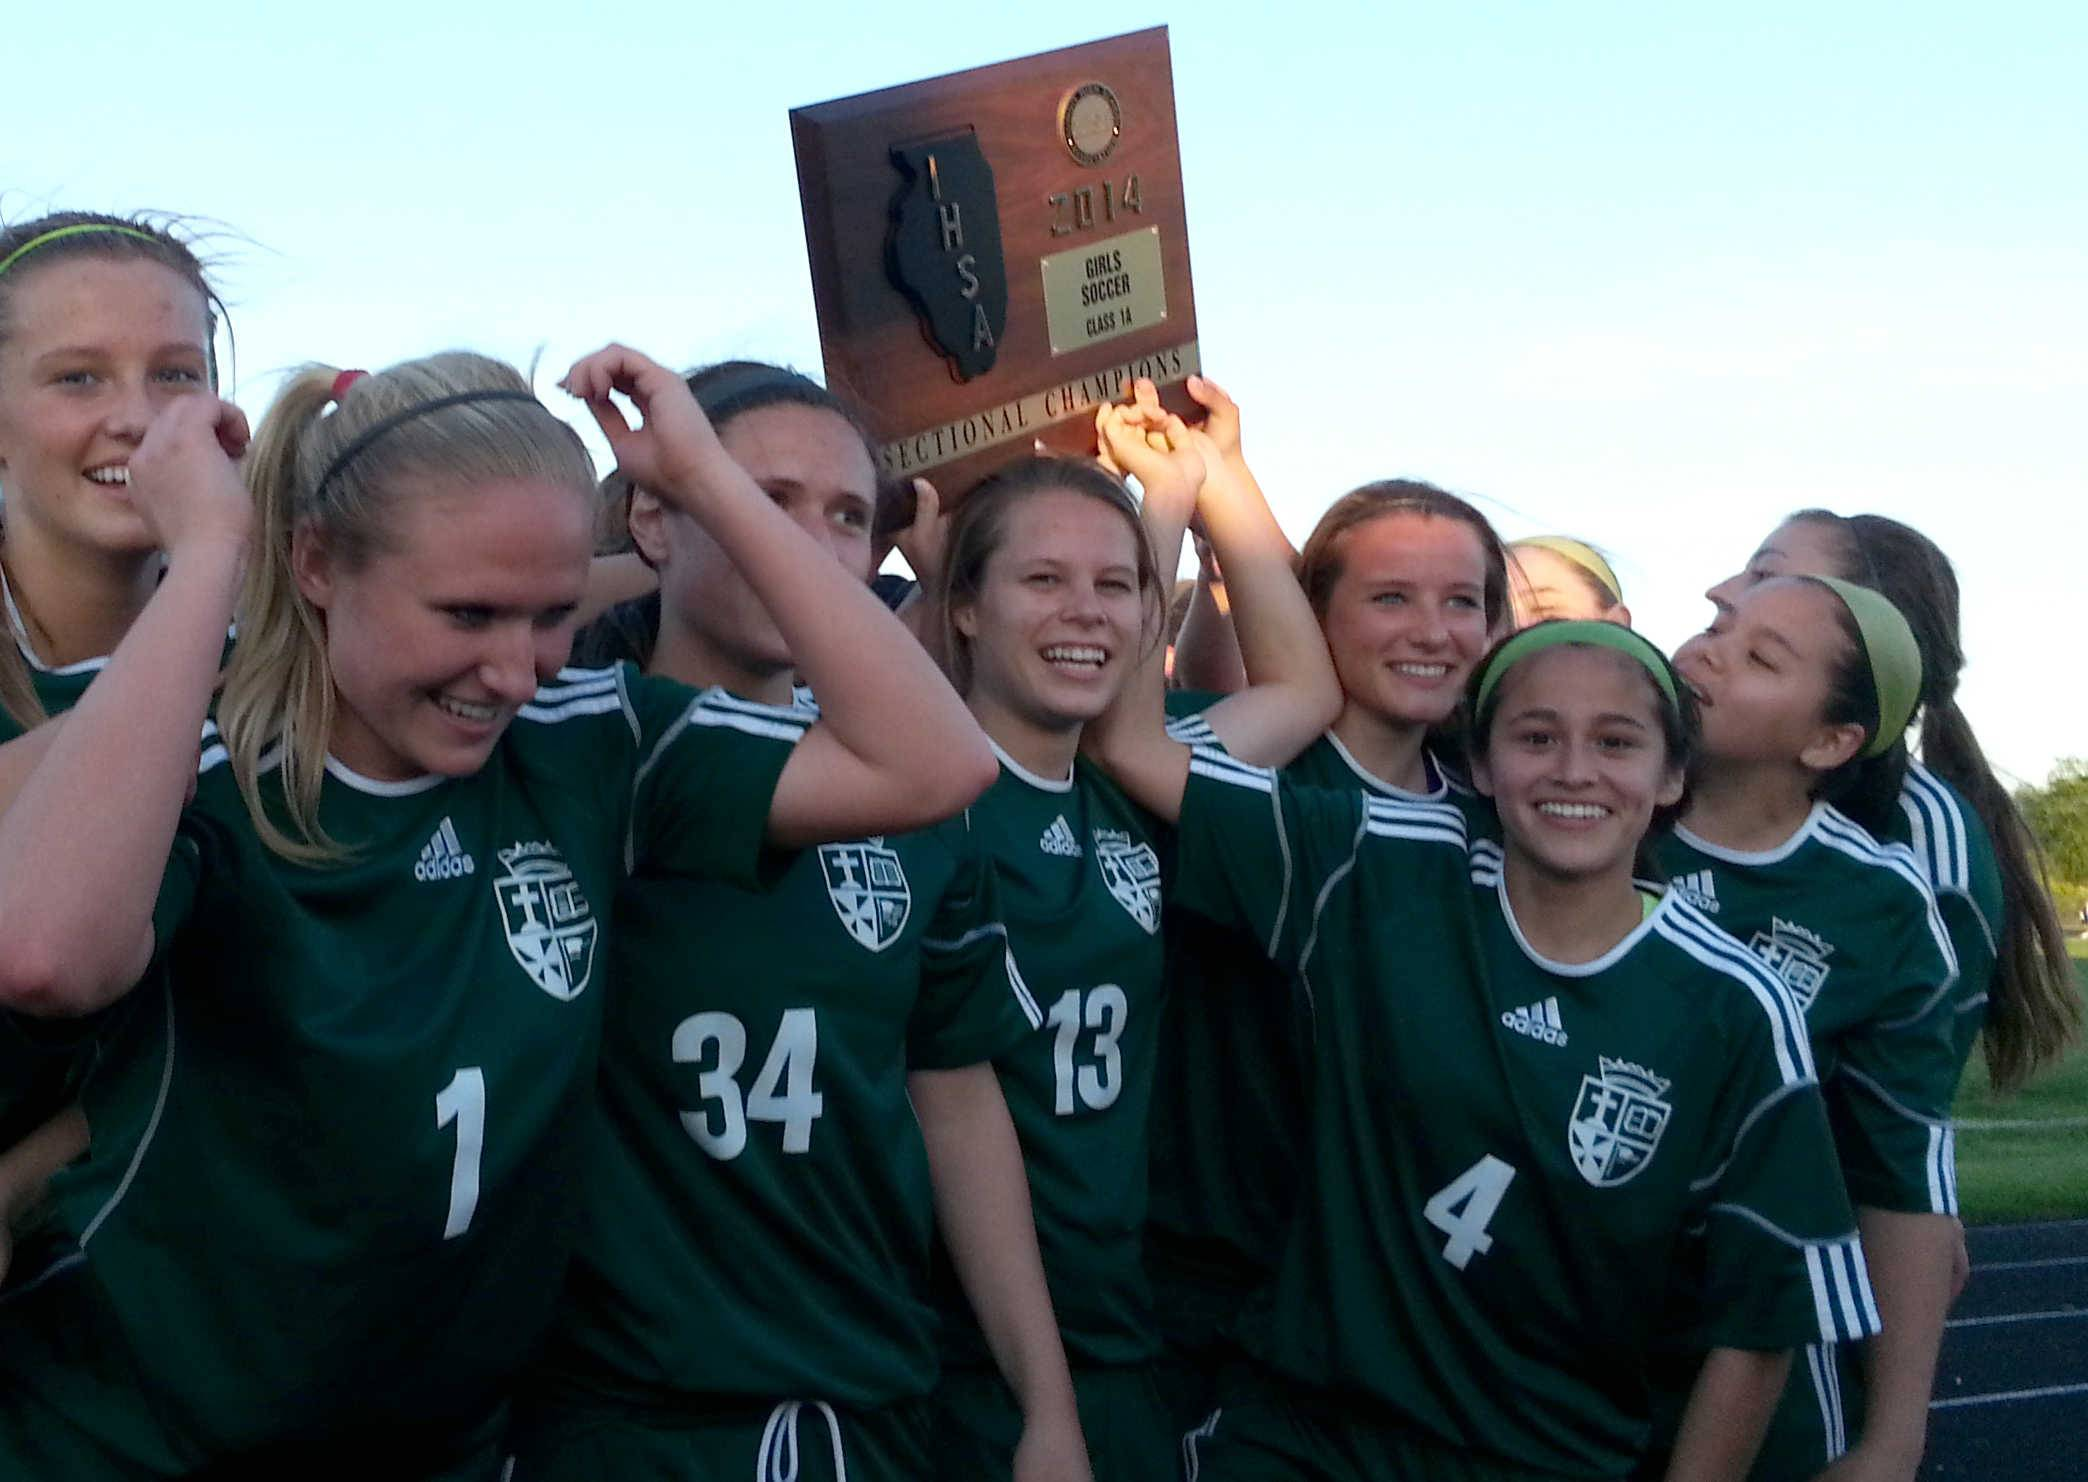 St. Edward's soccer team celebrates its Class 1A sectional championship at Richmond-Burton on Friday night.